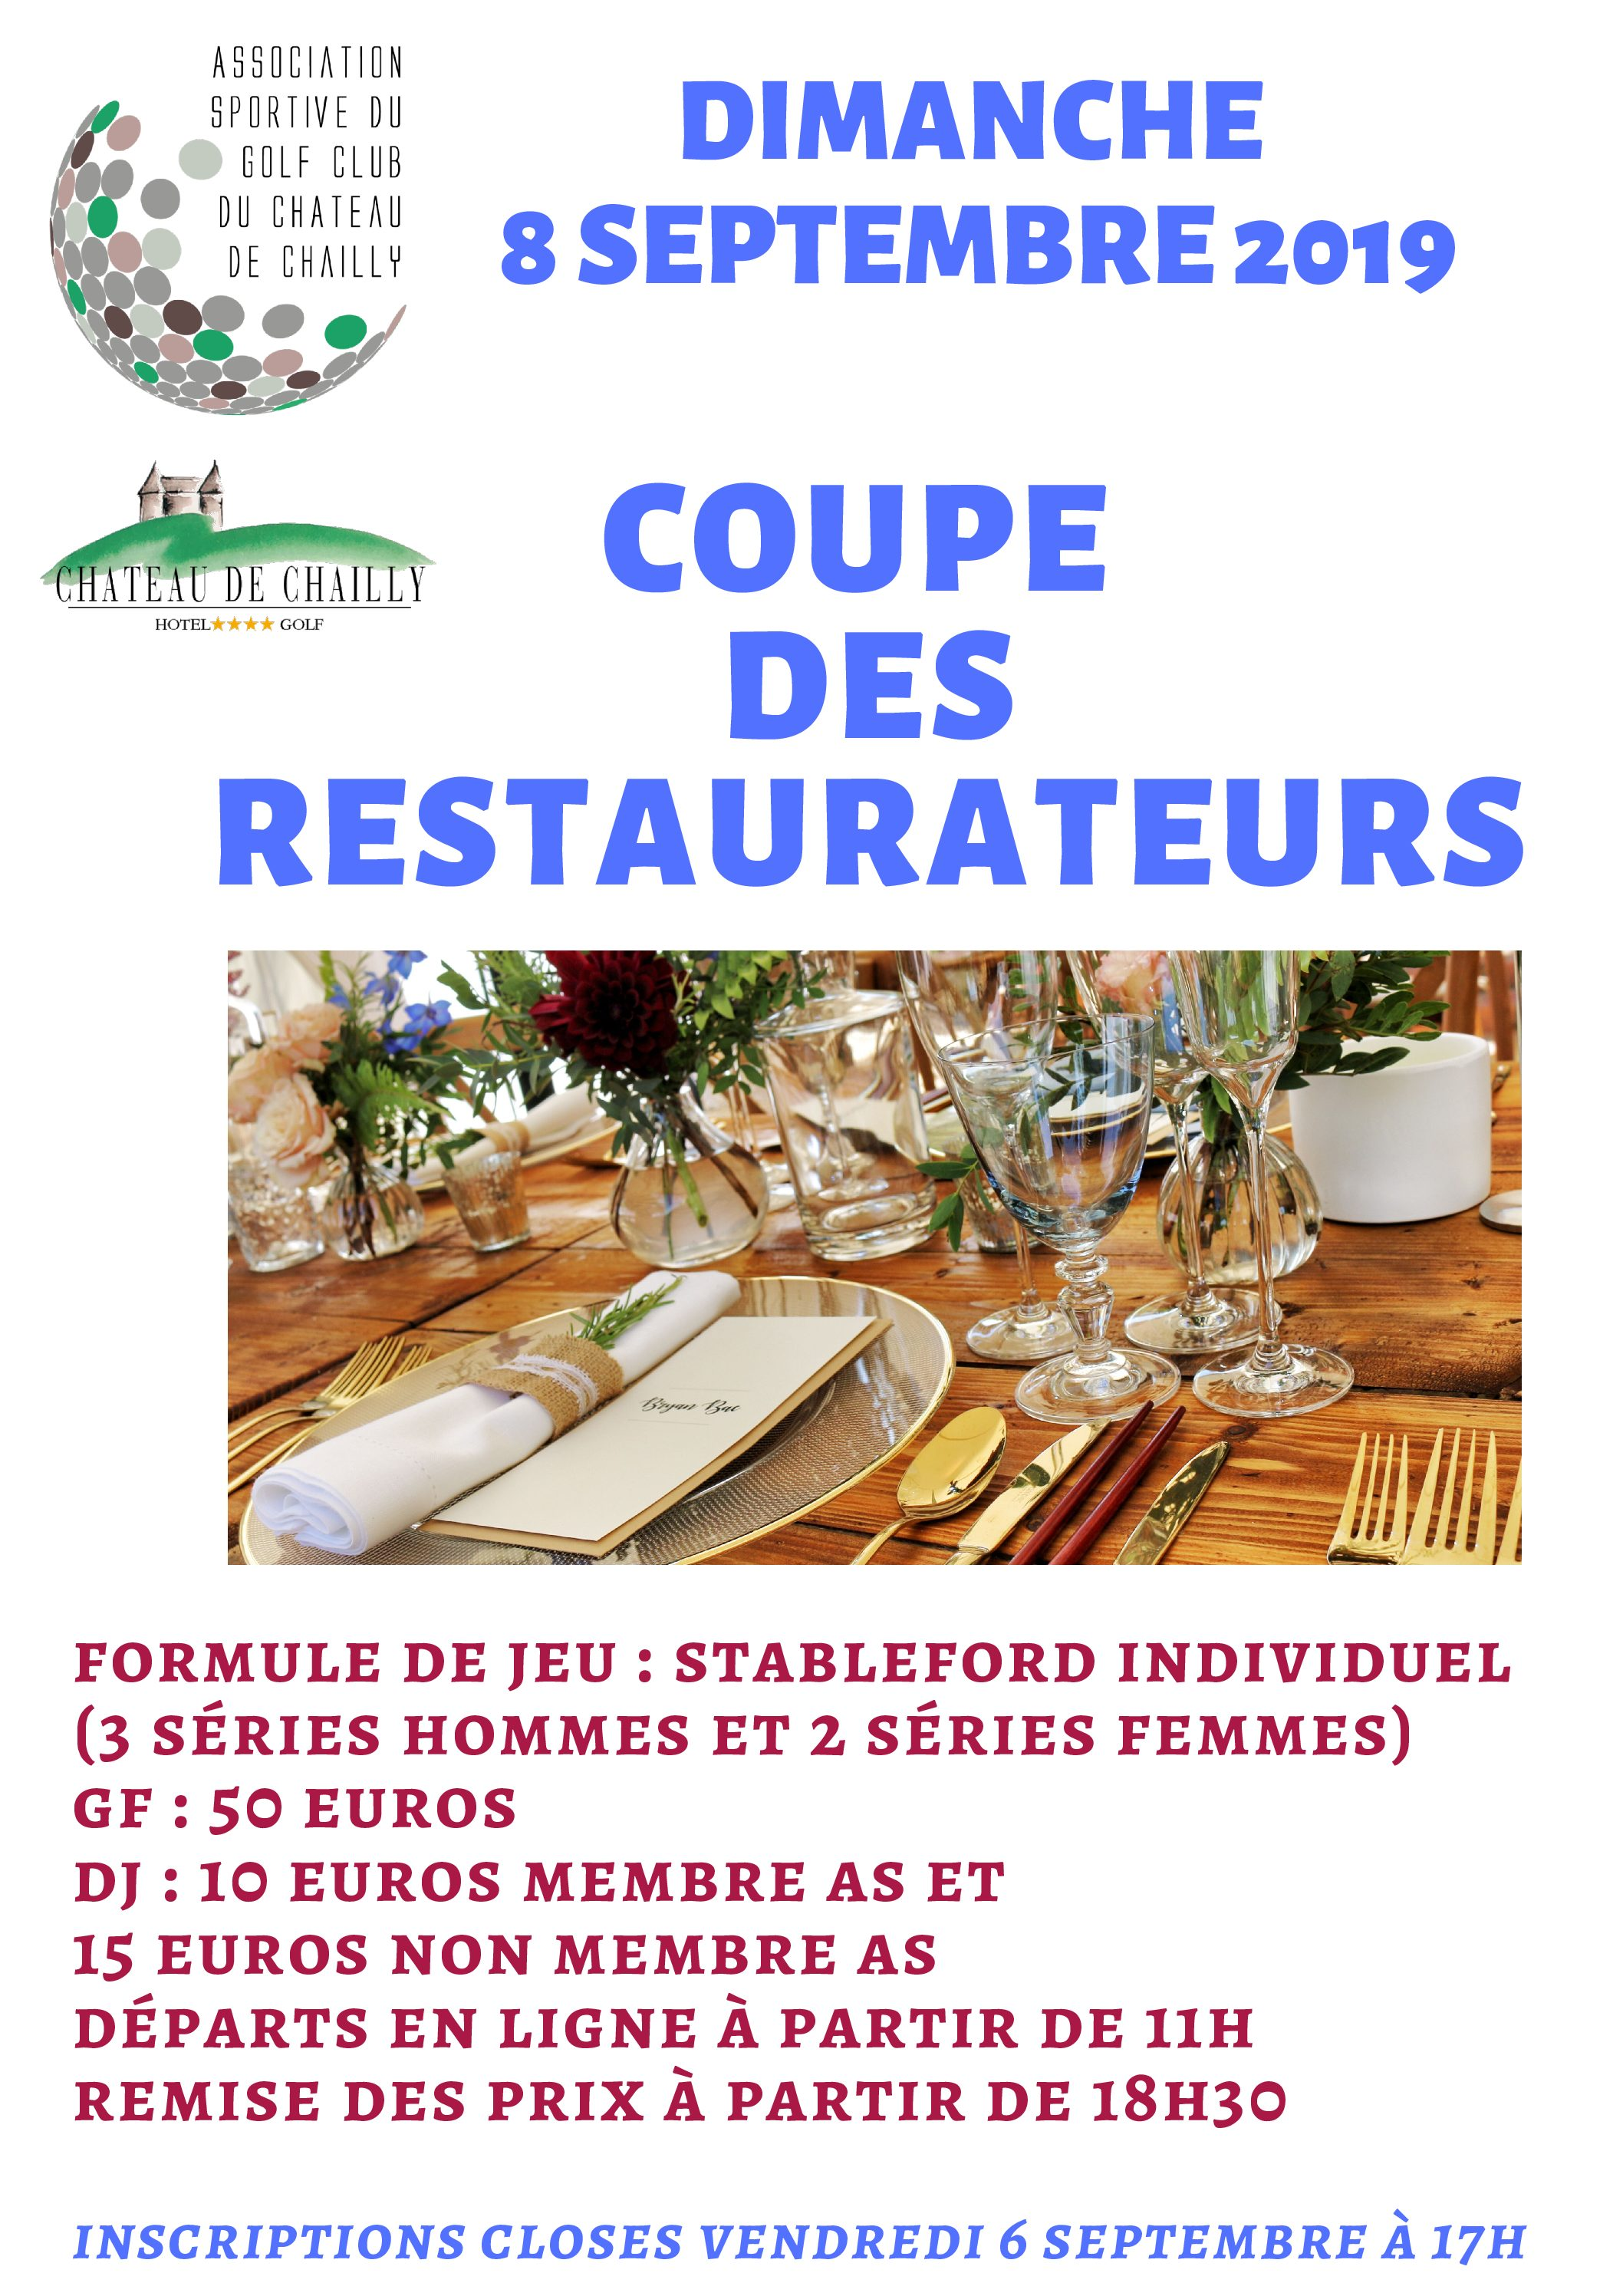 COUPE DES RESTAURATEURS – 8 SEPTEMBRE 2019